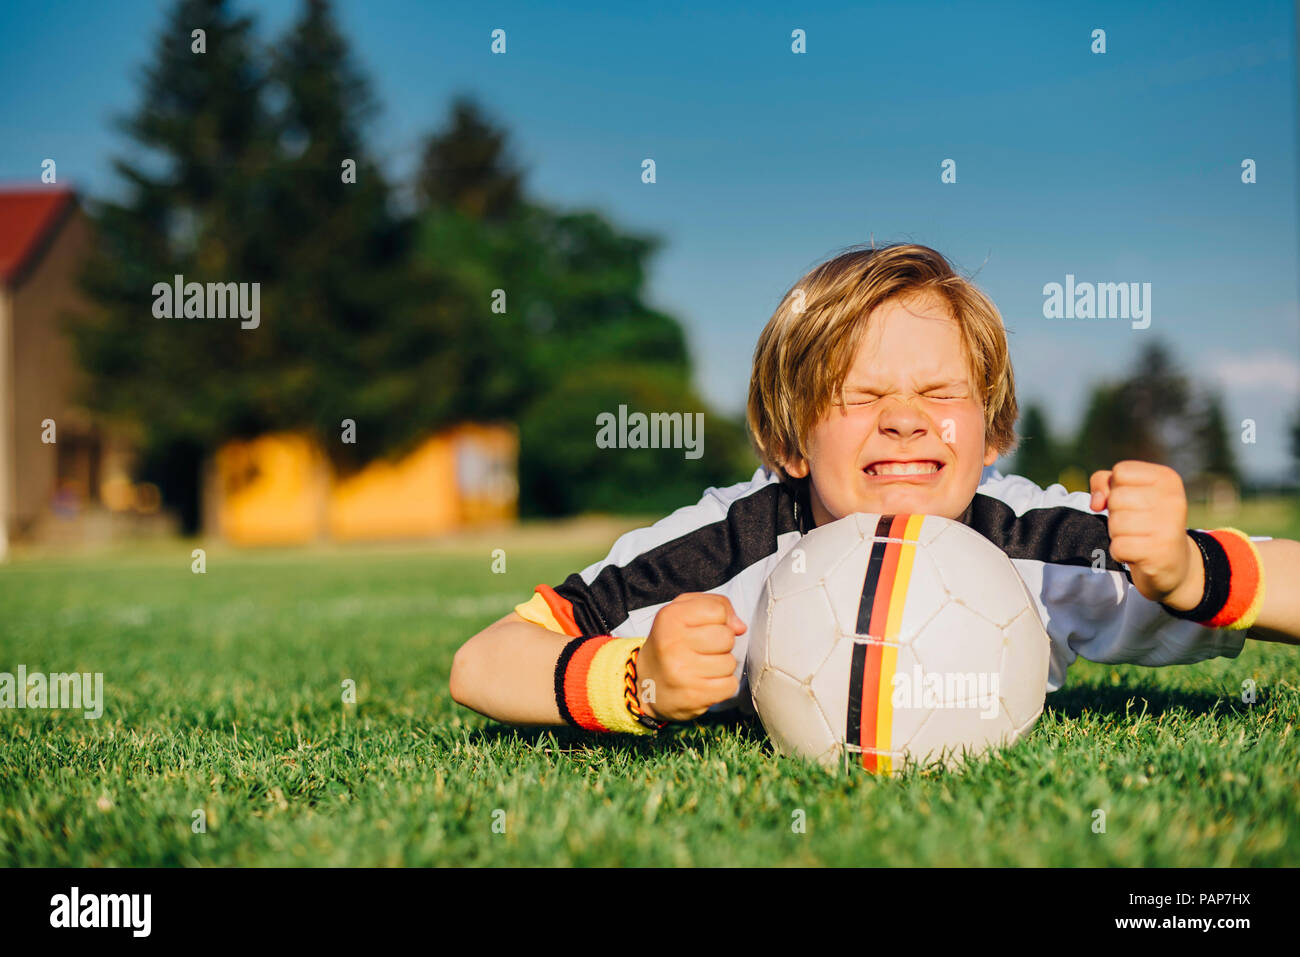 Boy in German soccer shirt lying on grass, keeping fingers crossed for world championship - Stock Image